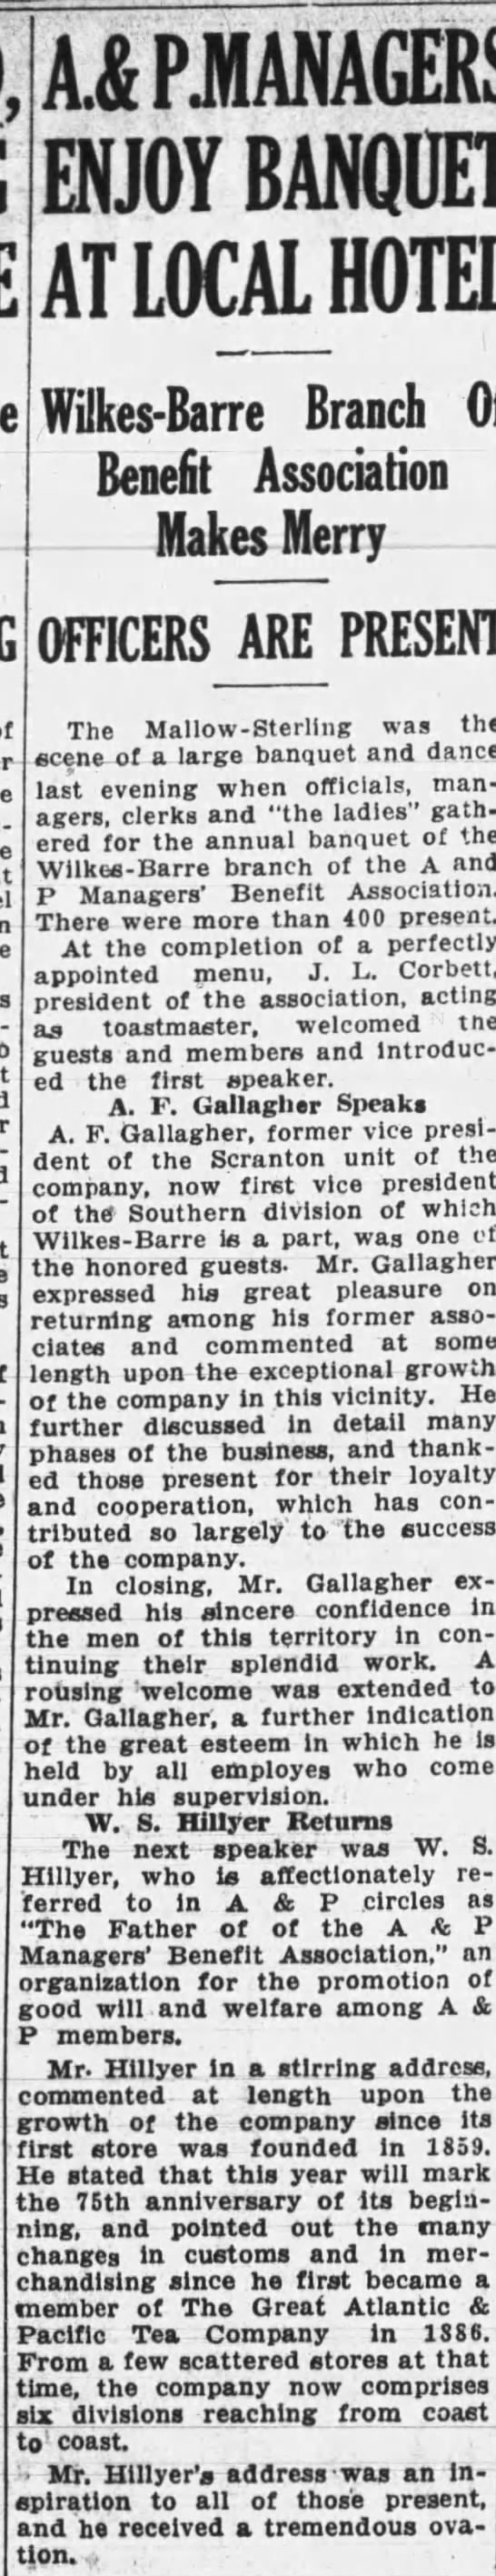 The Evening News (Wilkes-Barre, Pennsylvania) 10 May 1934, Thu Page 12 - AiPIANAGERS ENJOY BANQUET AT LOCAL HOTEL...